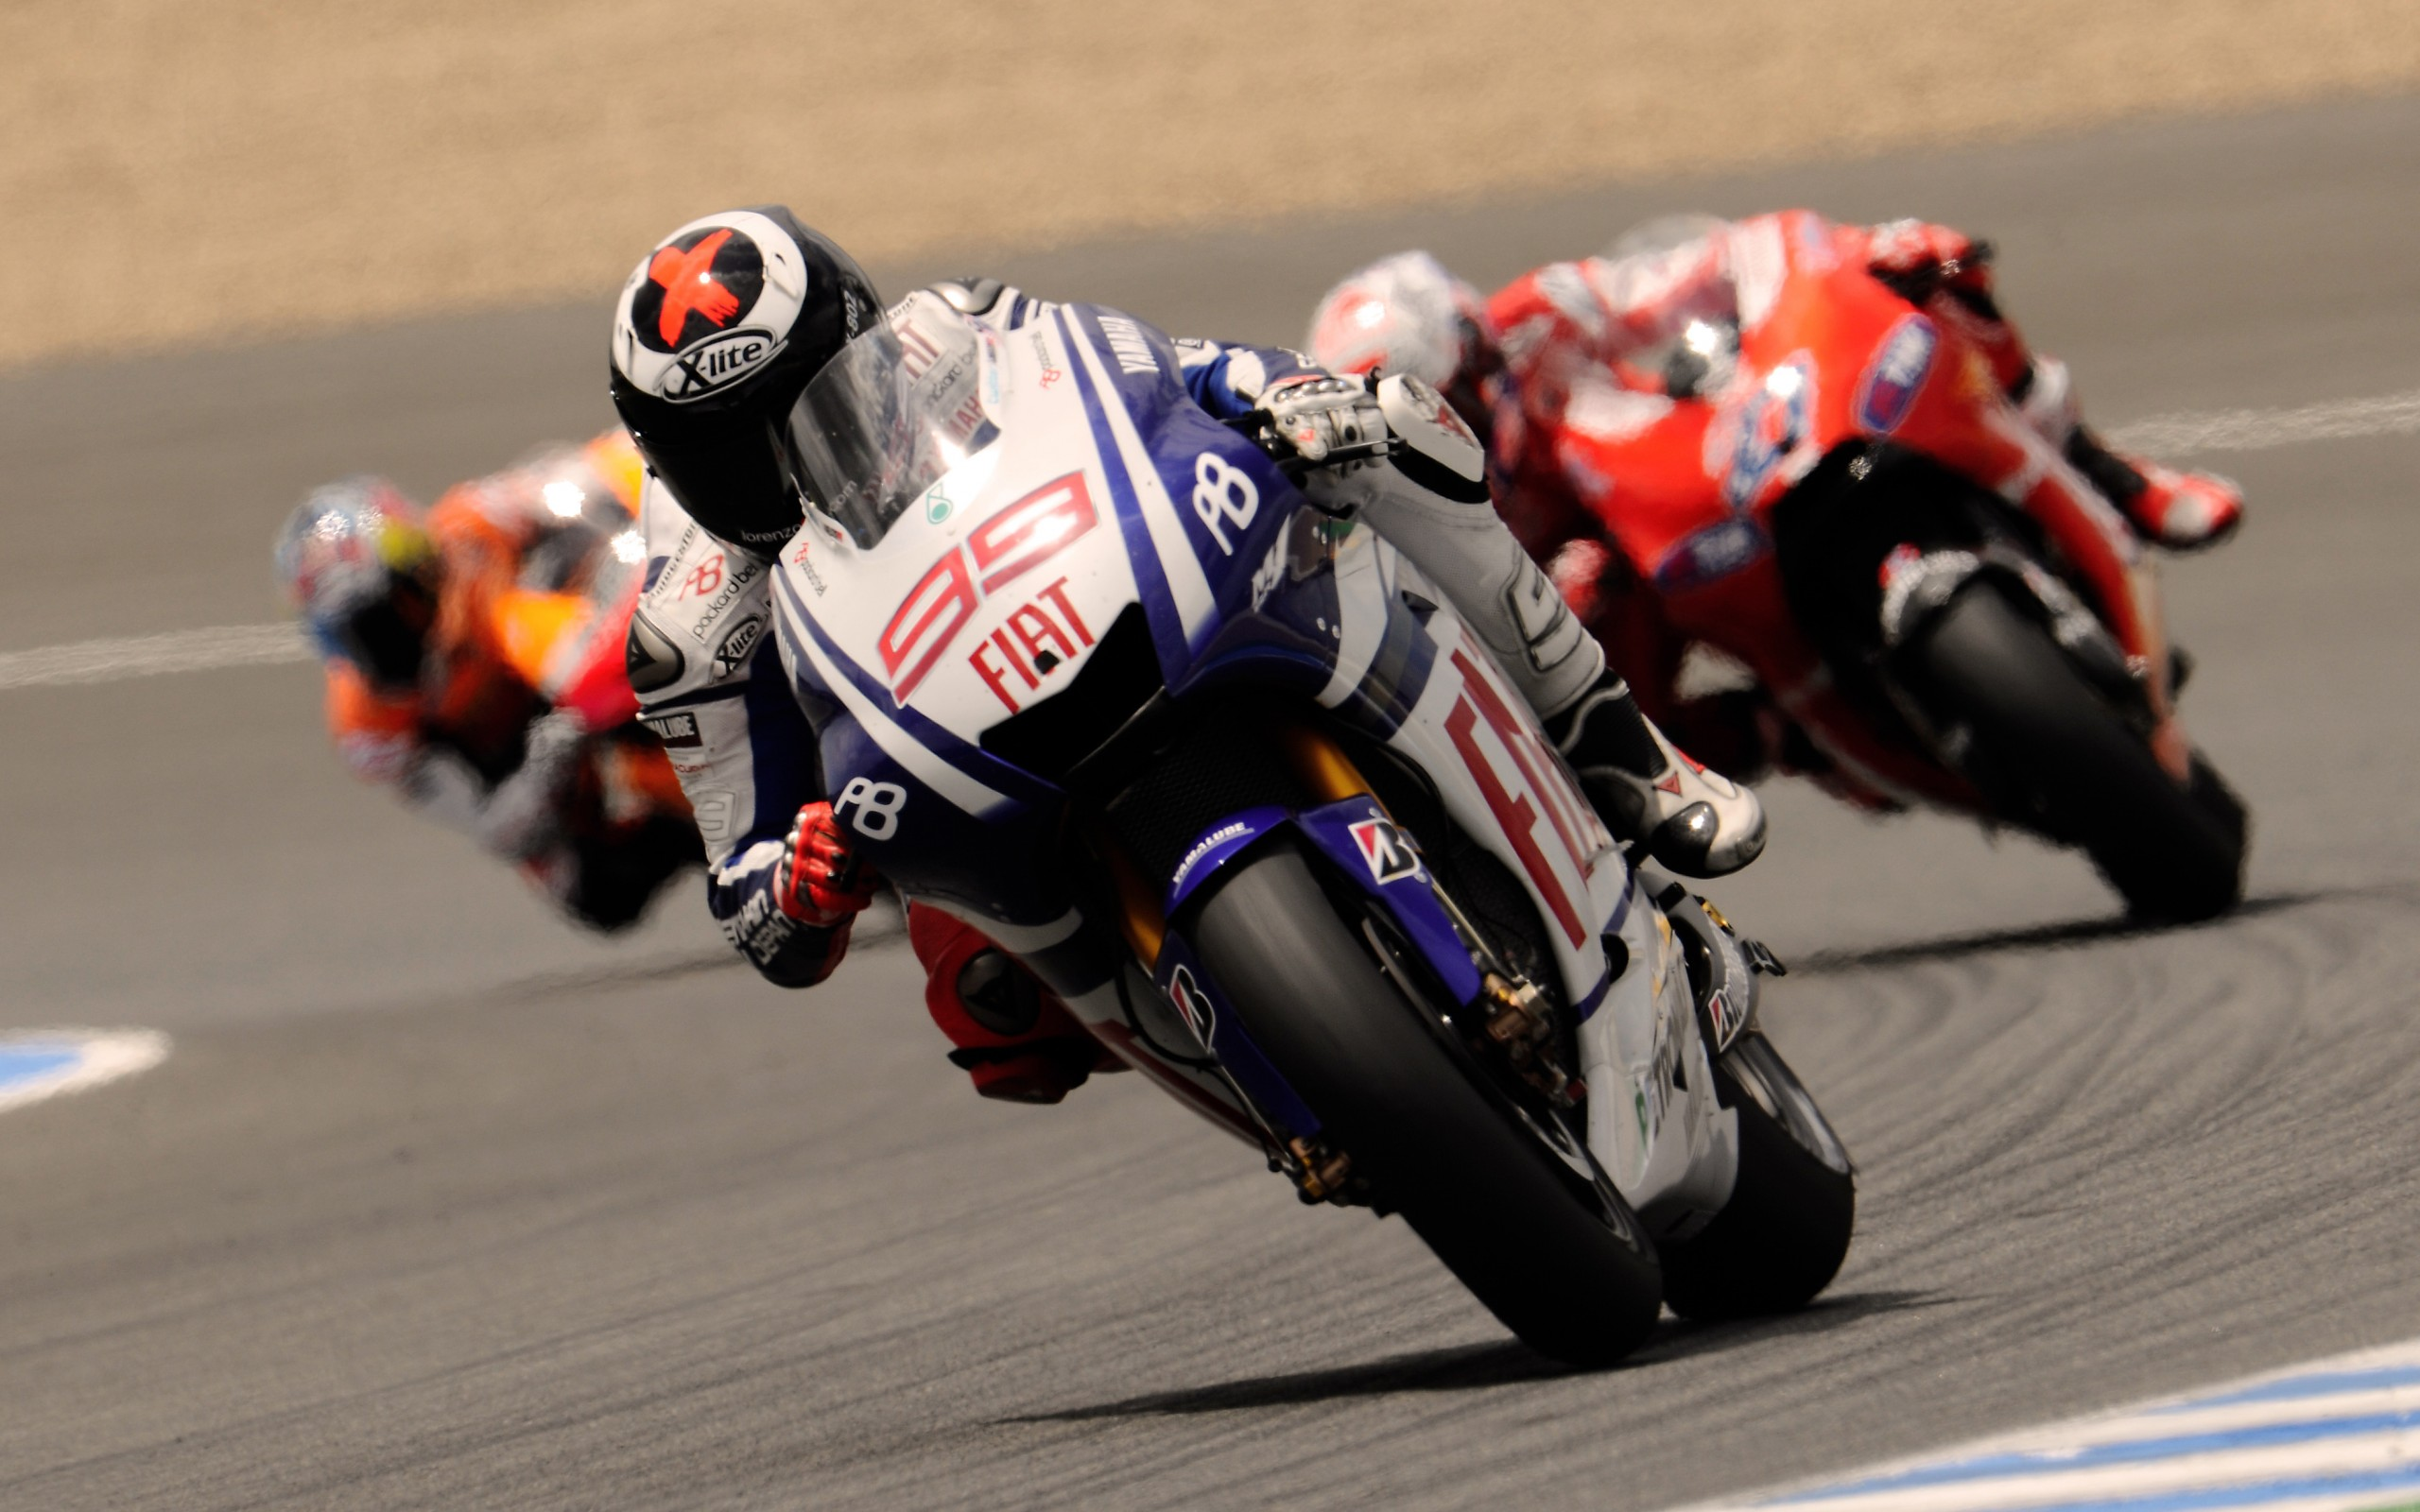 3 Motorcycle Racing HD Wallpapers | Backgrounds - Wallpaper Abyss